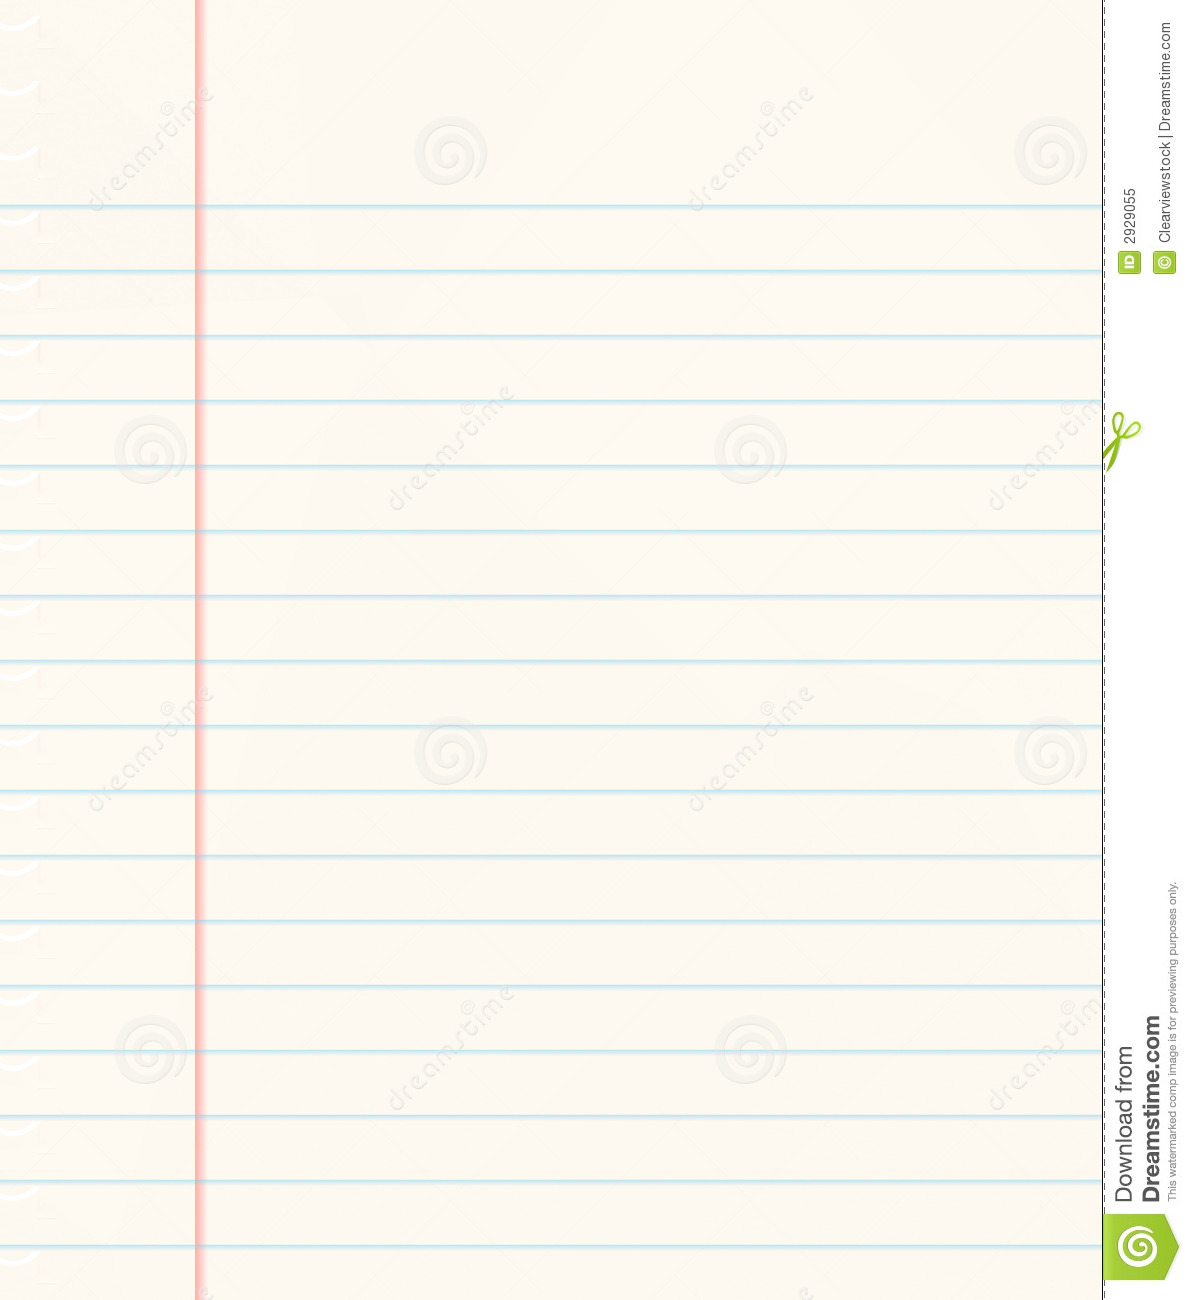 Nice image of a book of ruled or lined paper.